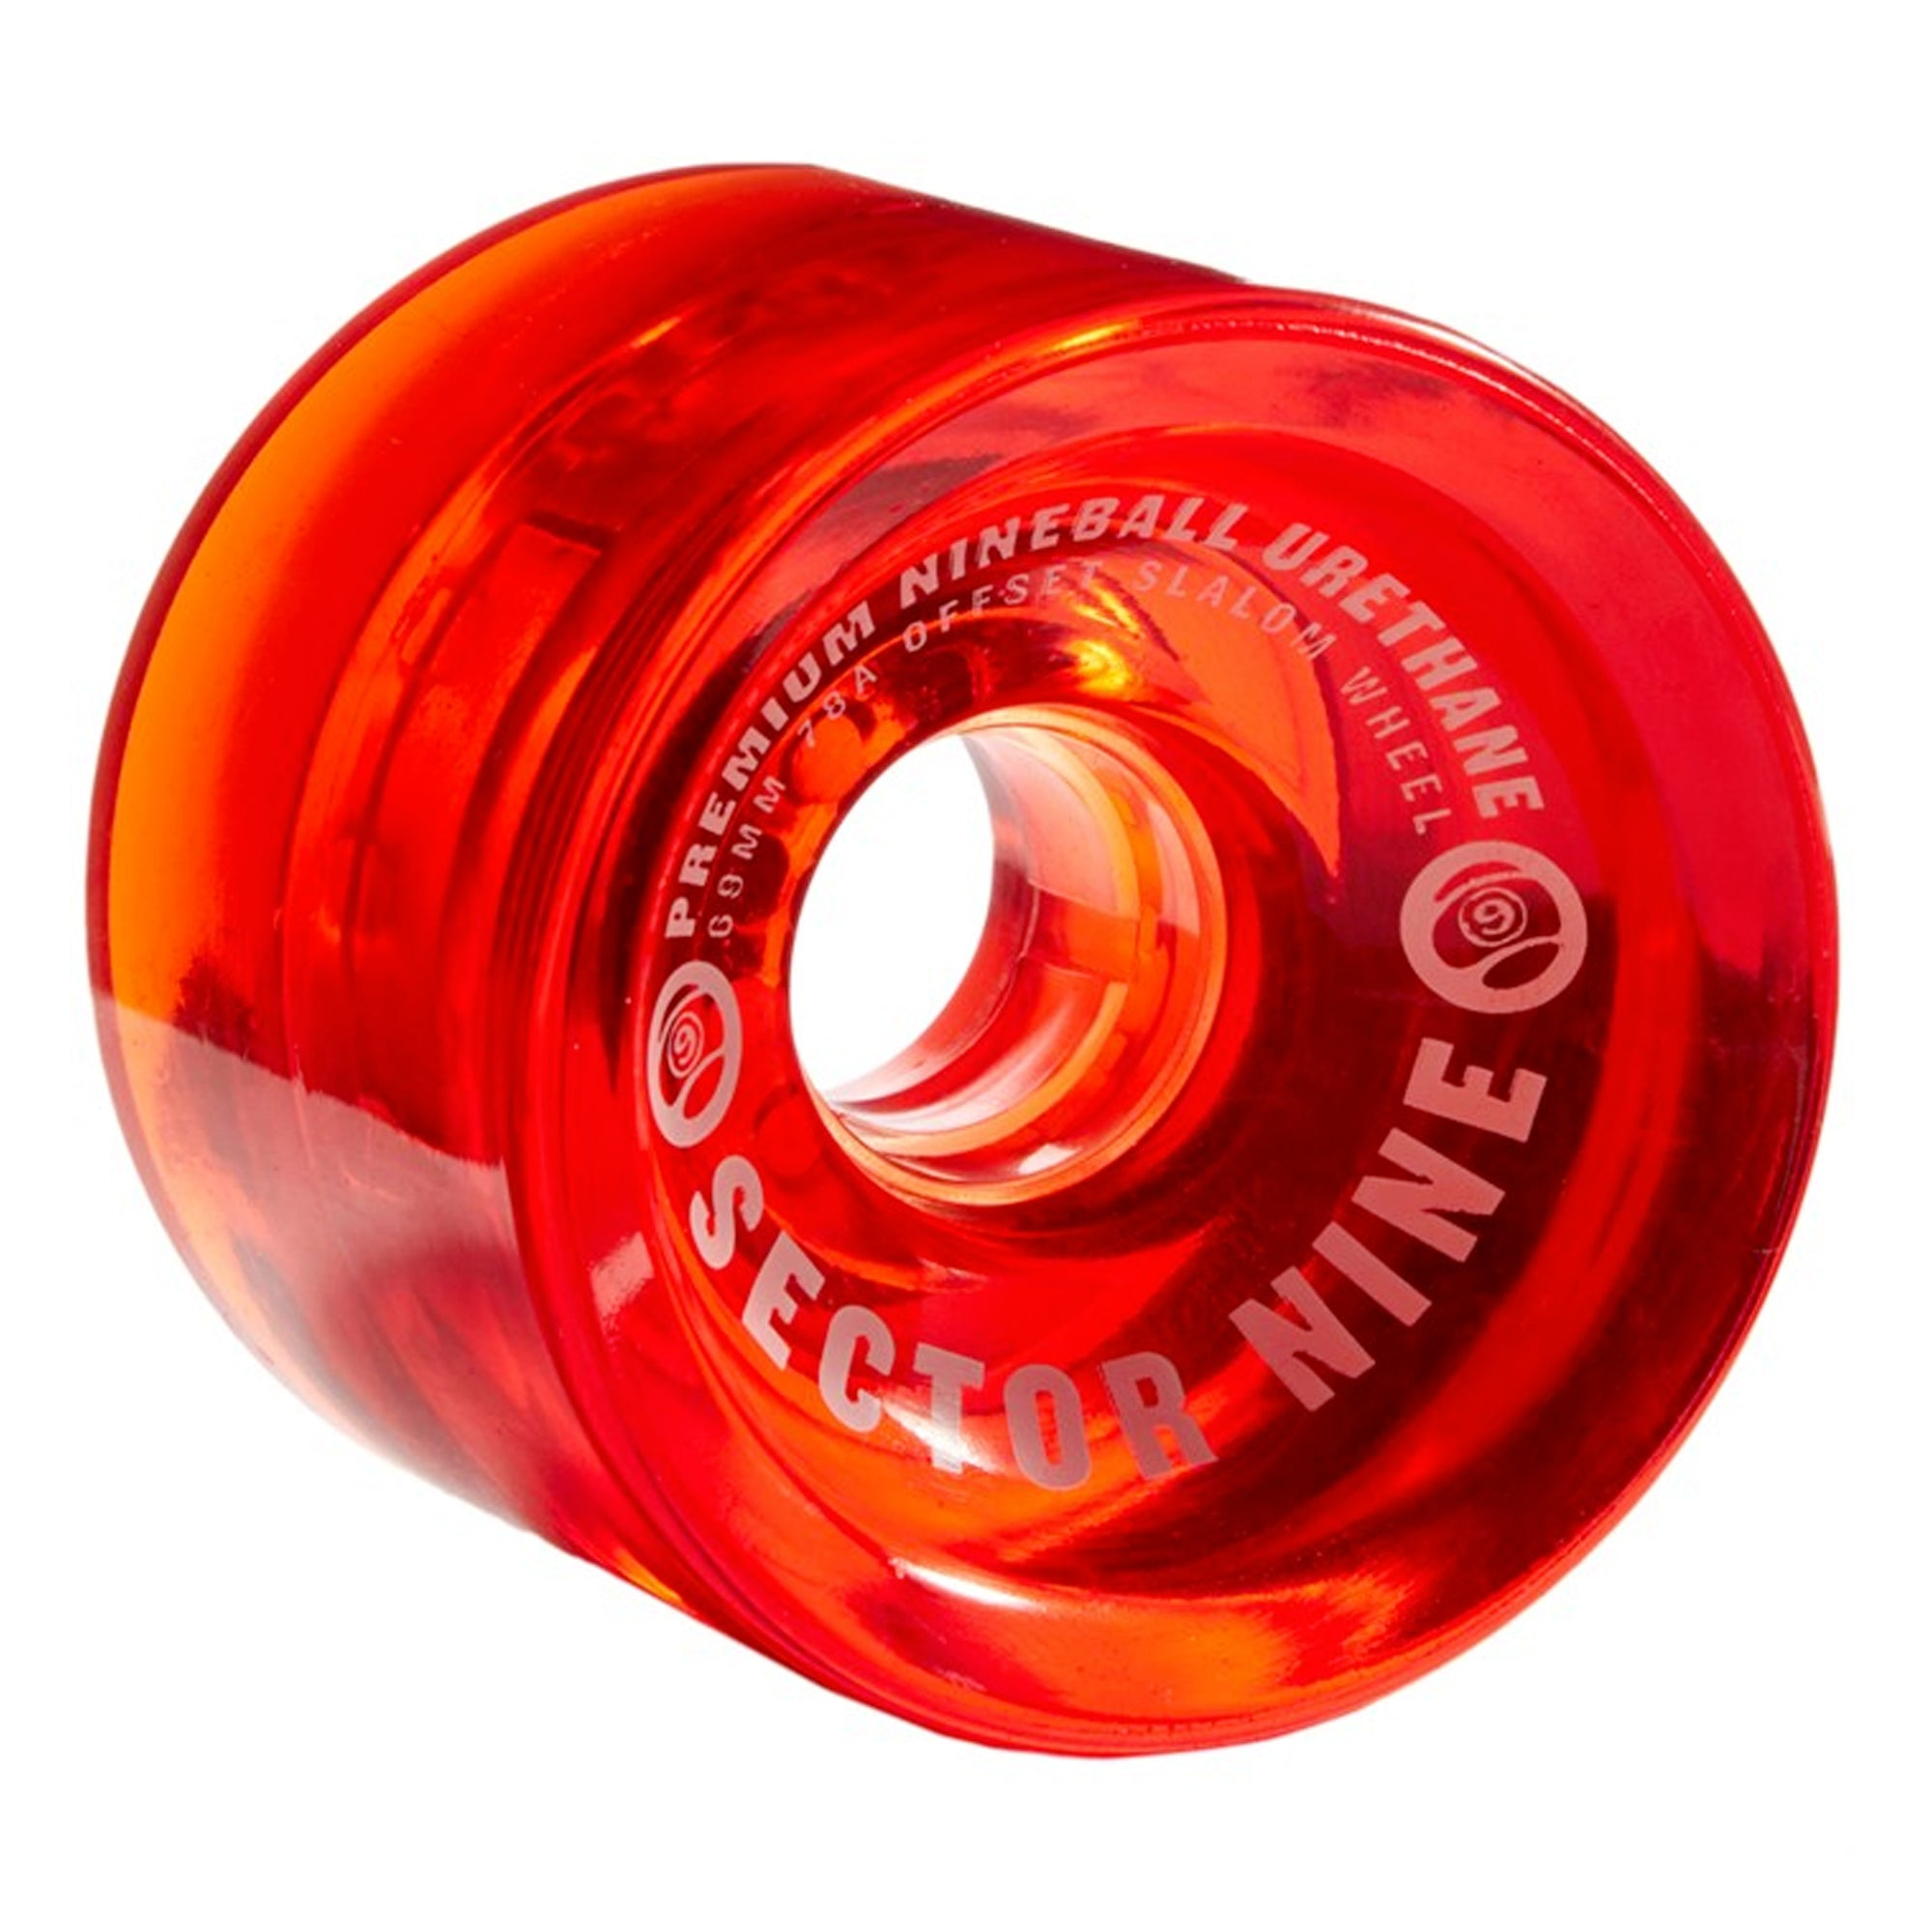 Sector 9 Nineballs 65mm Slalom 78a Cruiser Wheels - Warm Red